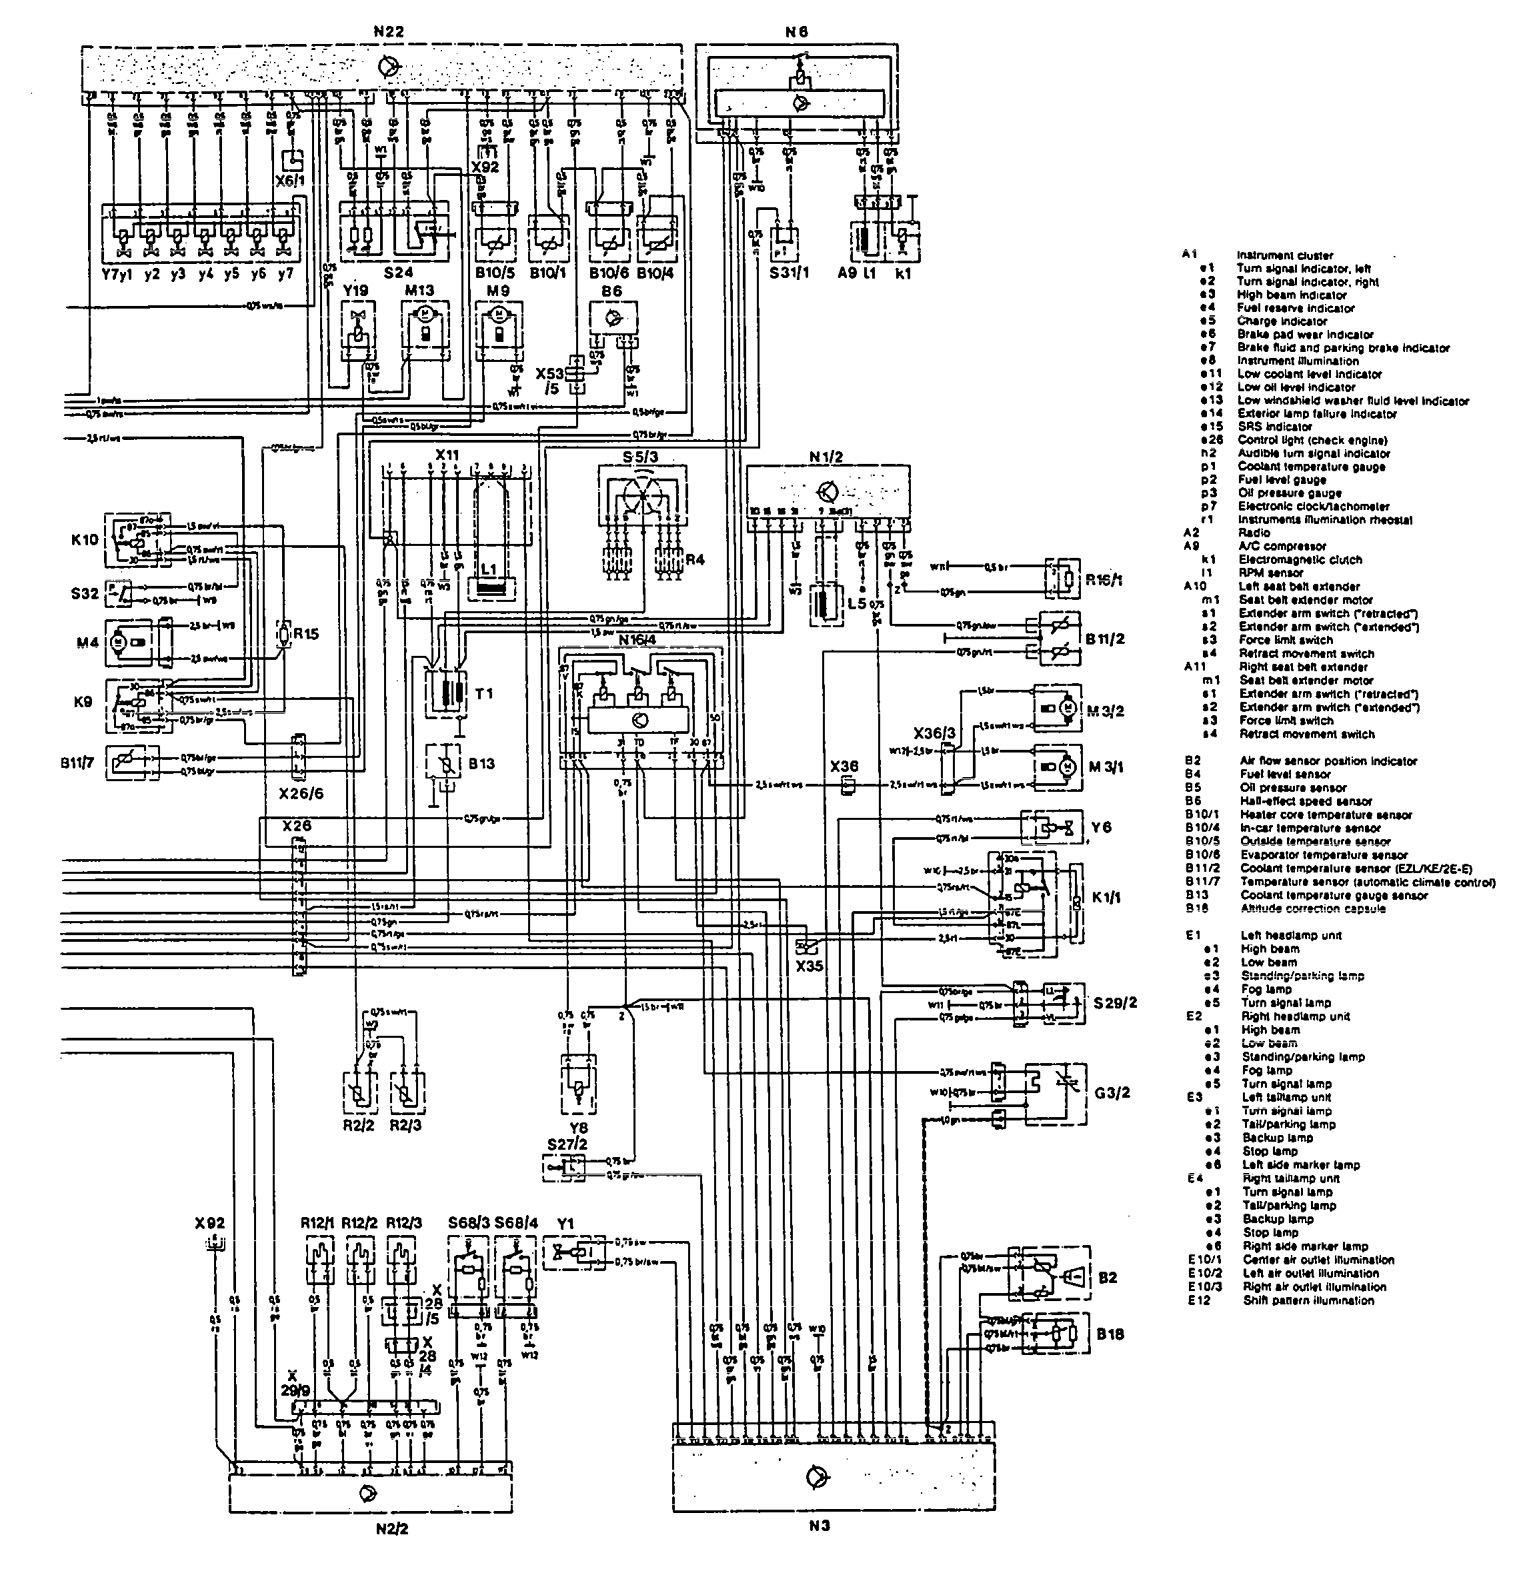 Wiring Diagram For Mercedes 300ce Fuse Box 1974 Benz Diagrams 1992 1993 Starting Rh Carknowledge Info 300sd Power Windows Radio